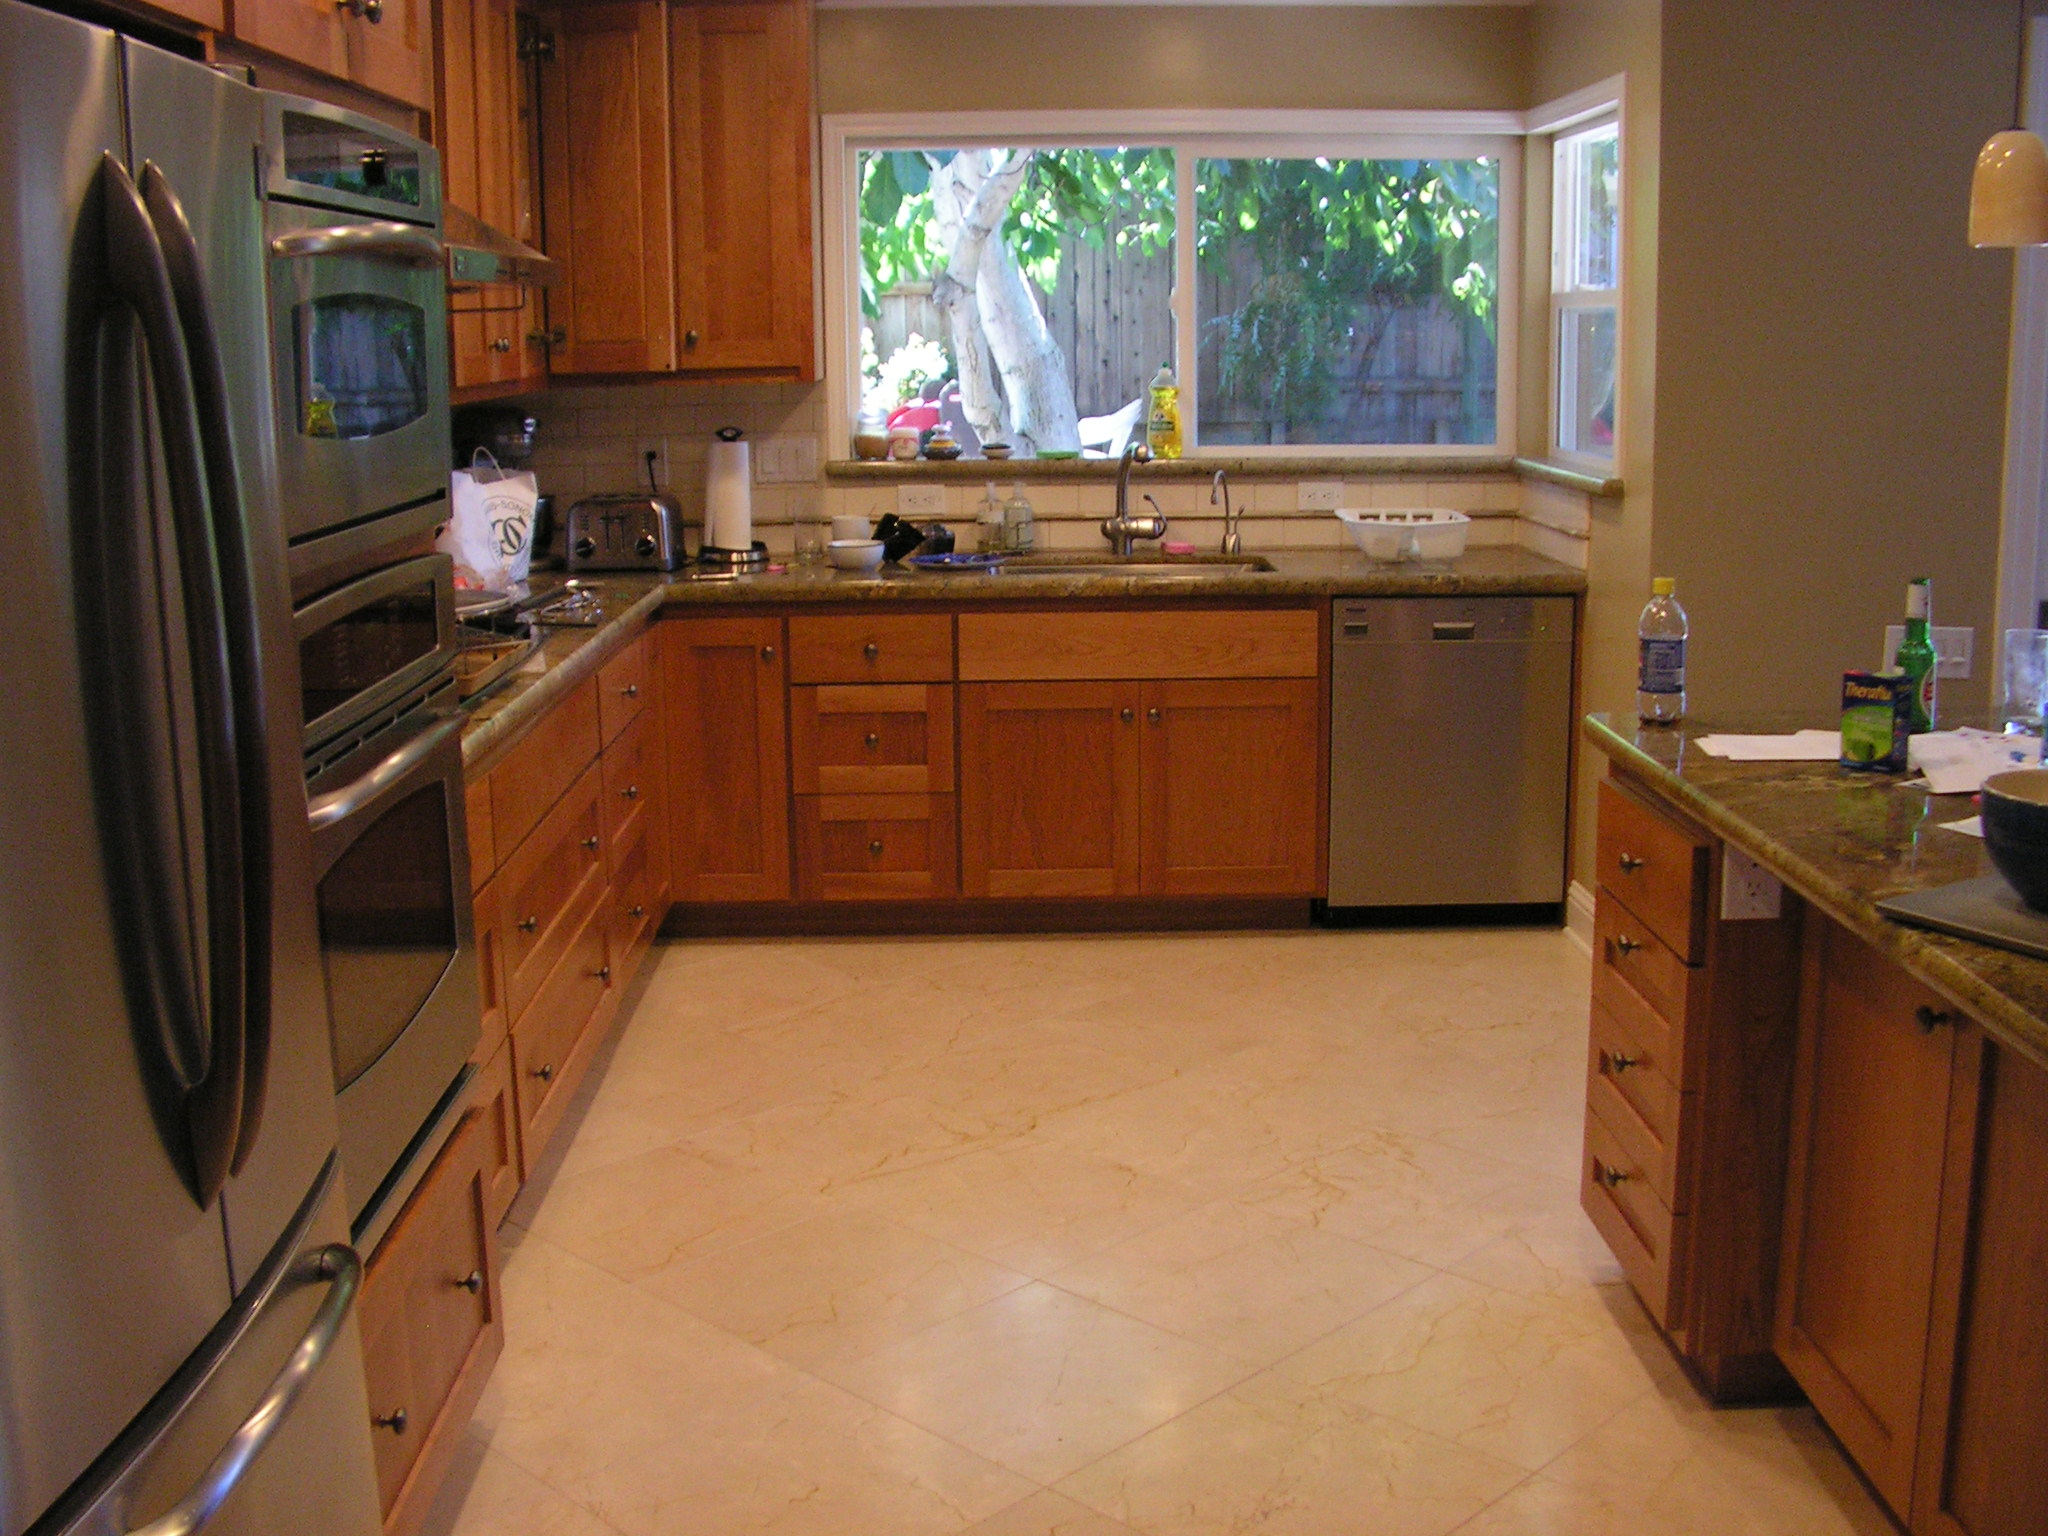 Kitchen Remodeling - Construction With Integrity - General Contractor